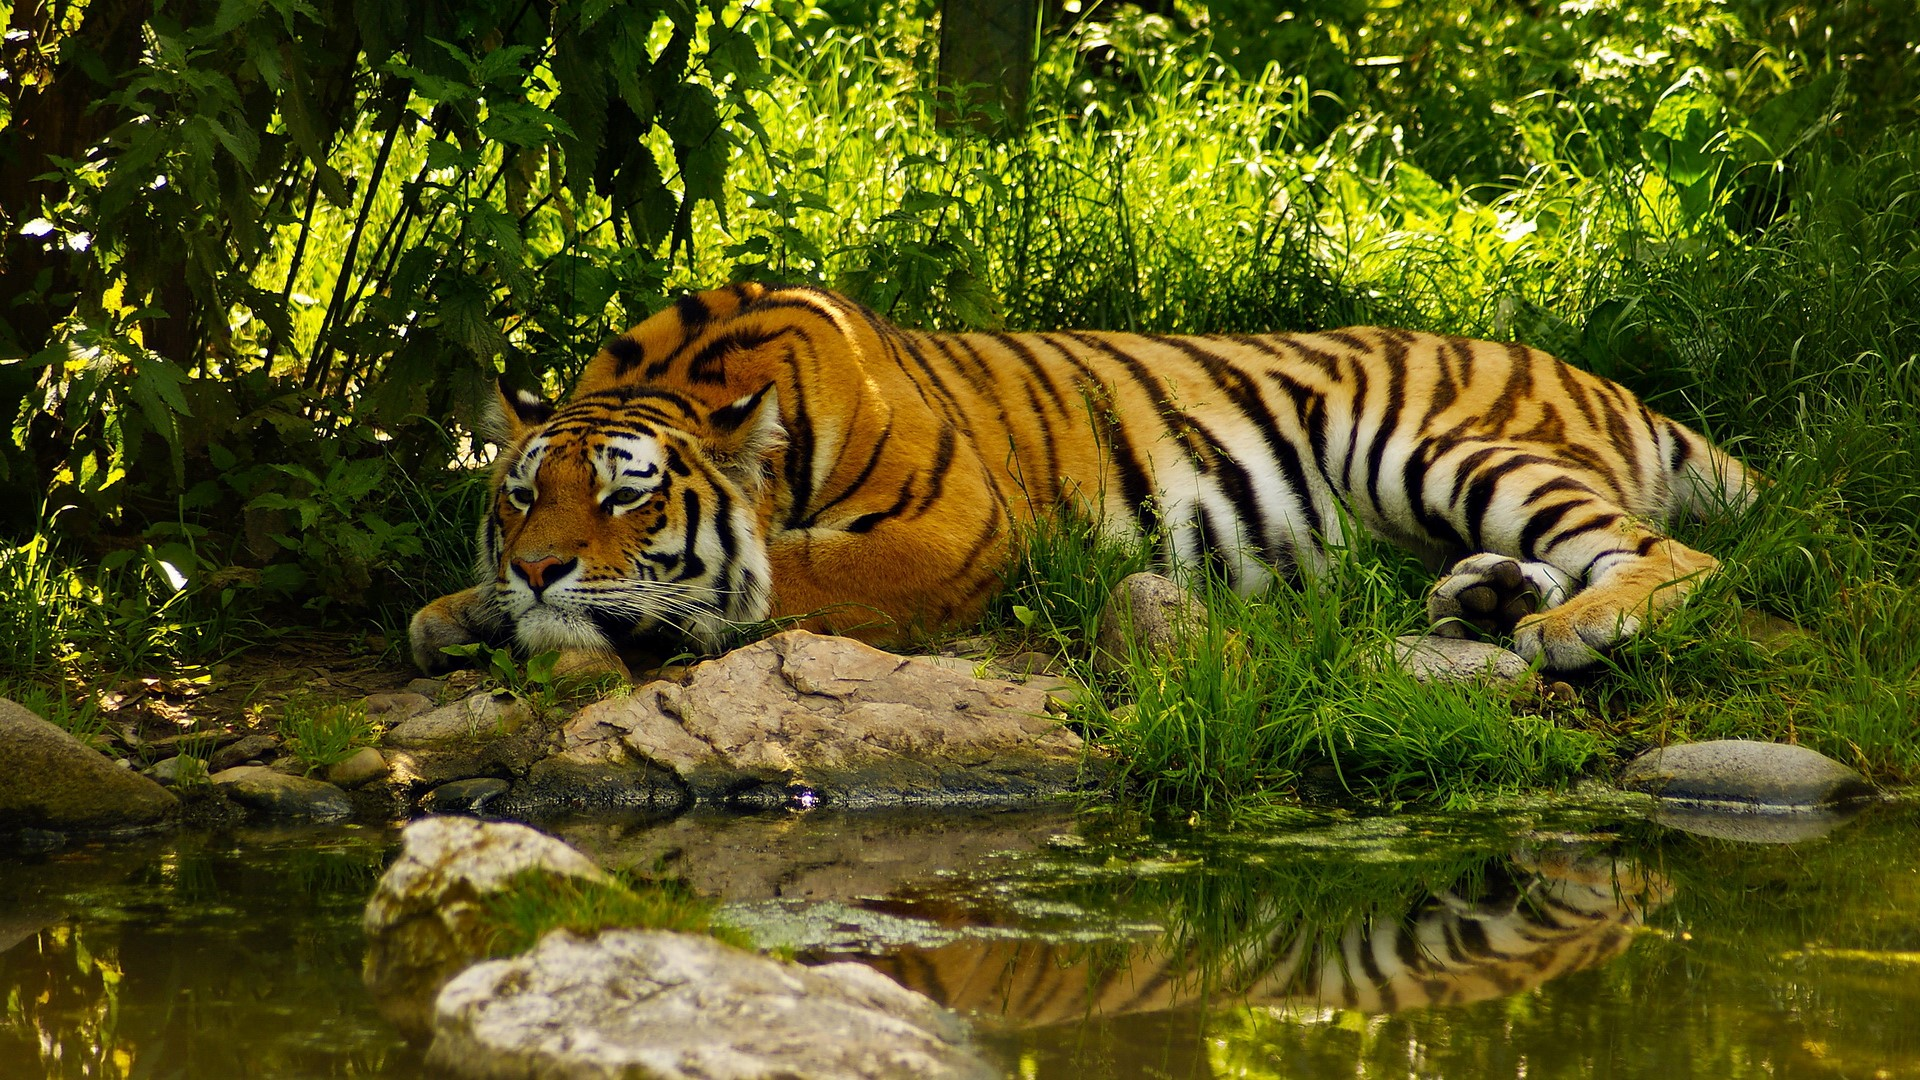 Beautiful Tiger Sleeping in Green Jungle Wallpapers HD Wallpapers 1920x1080